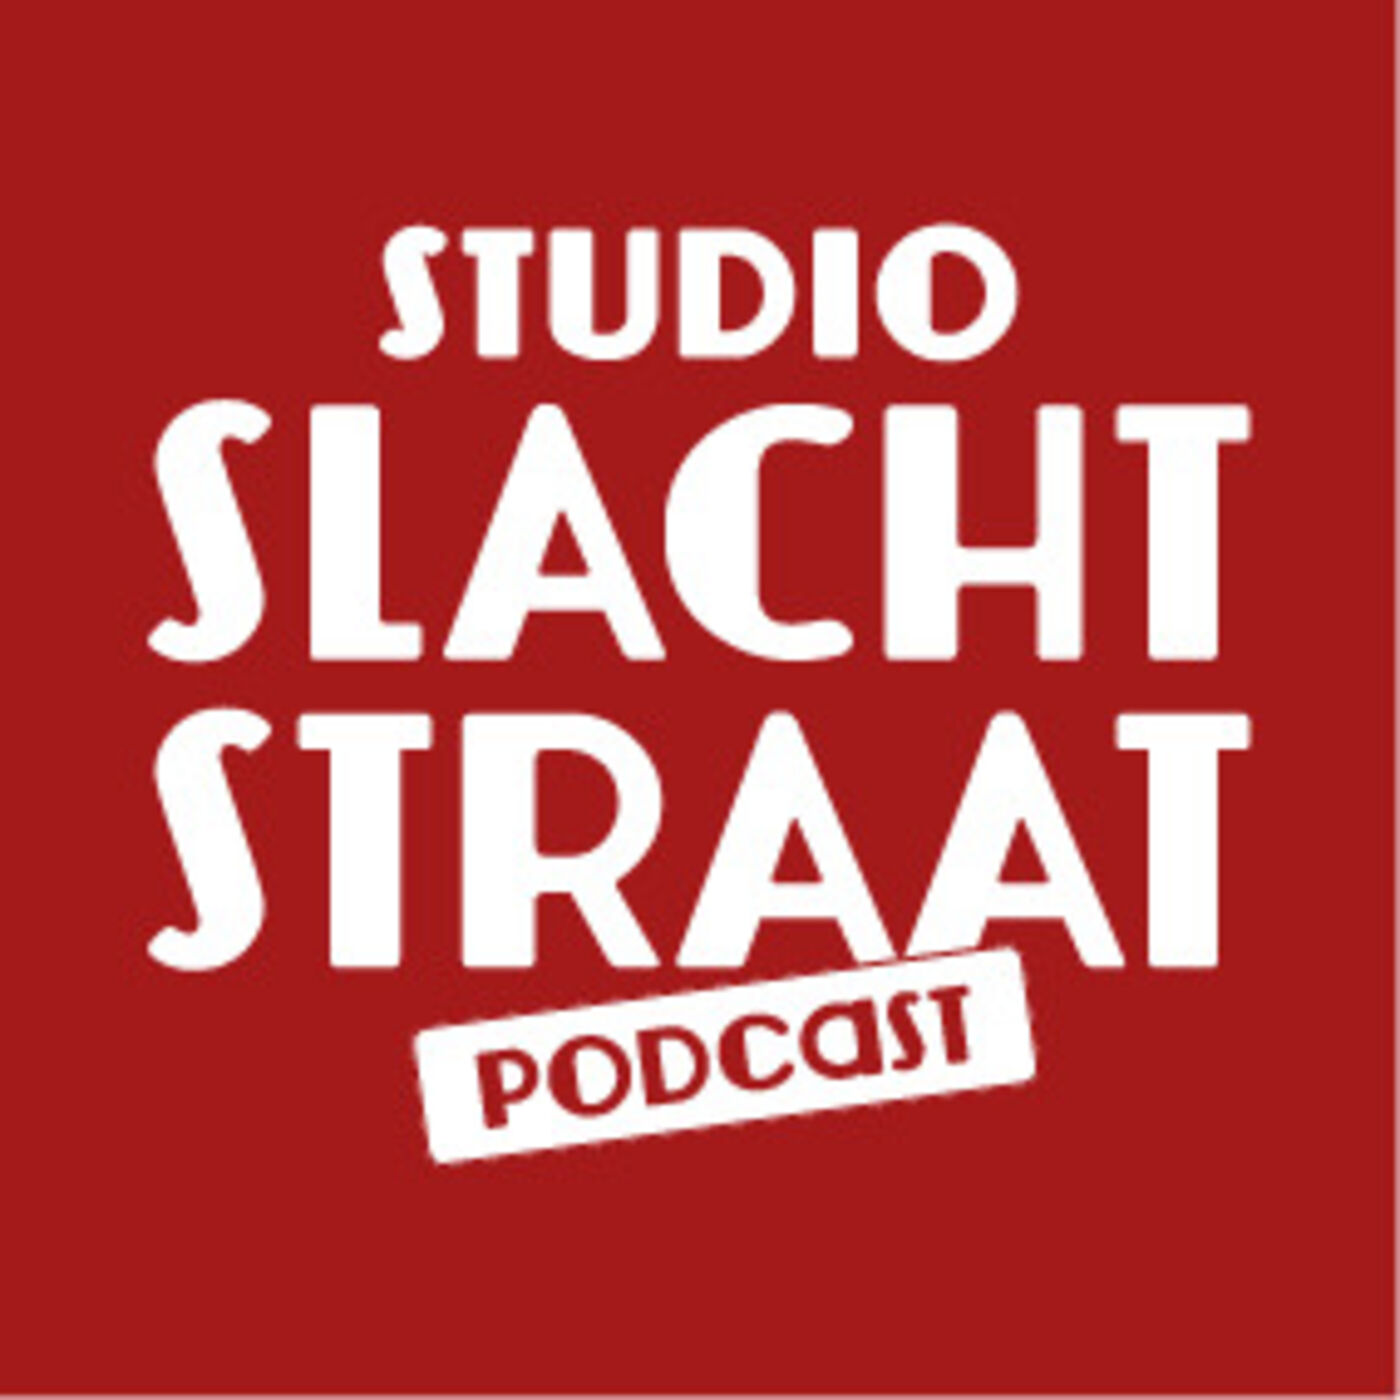 Studio Slachtstraat Podcast logo